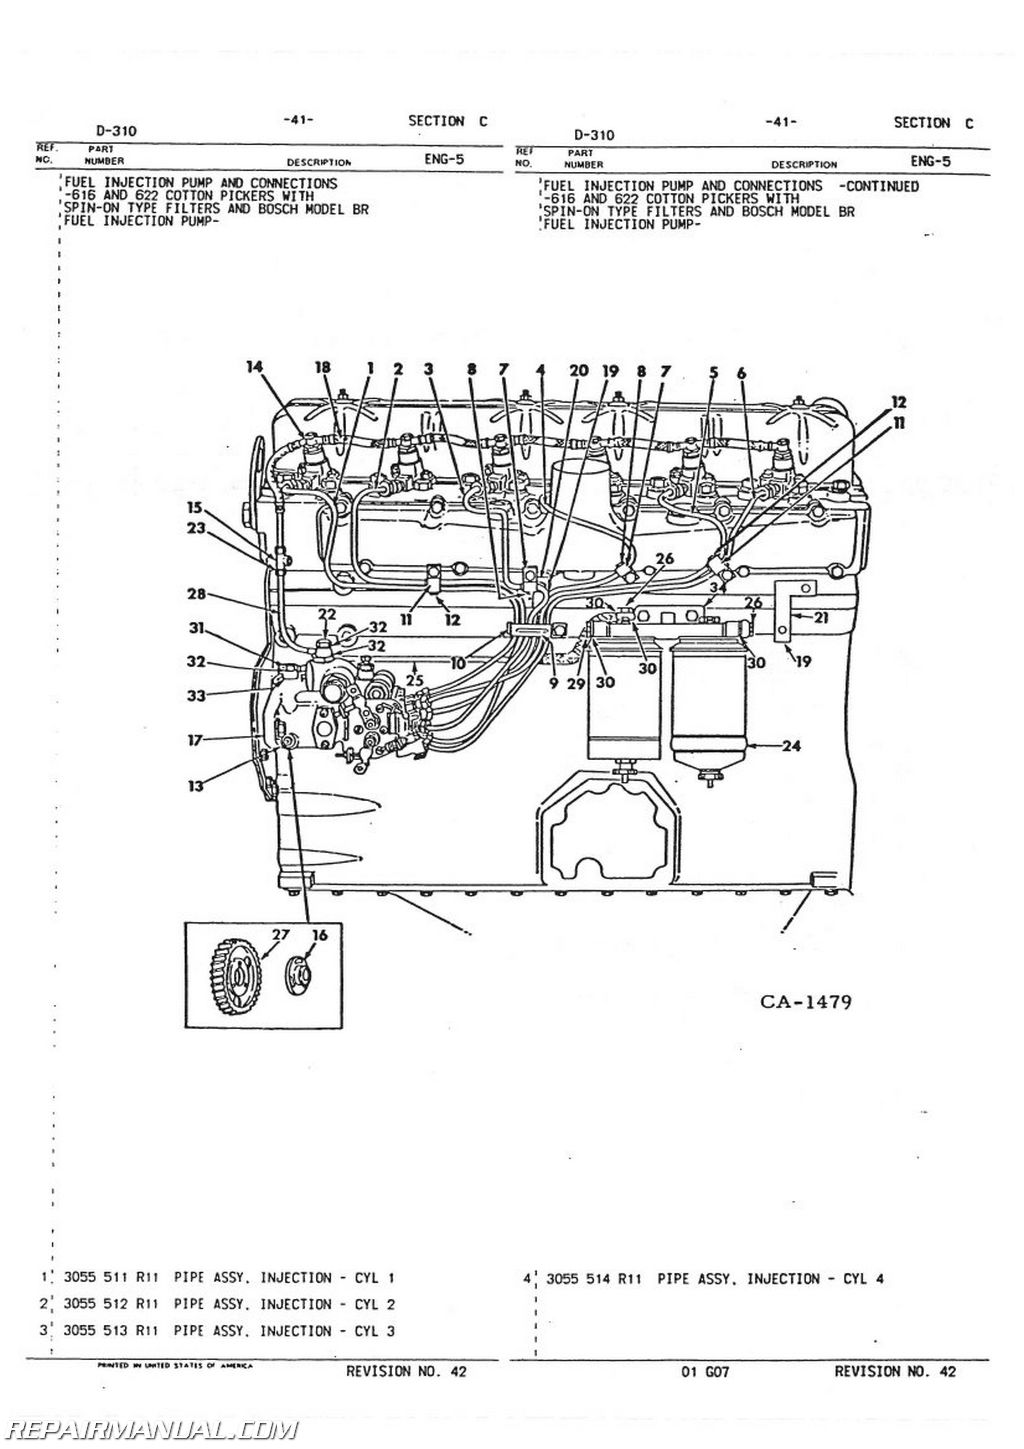 hight resolution of dt466e engine diagram wiring diagram datainternational dt466e engine diagram wiring diagram tutorial dt466 engine diagram dt466e